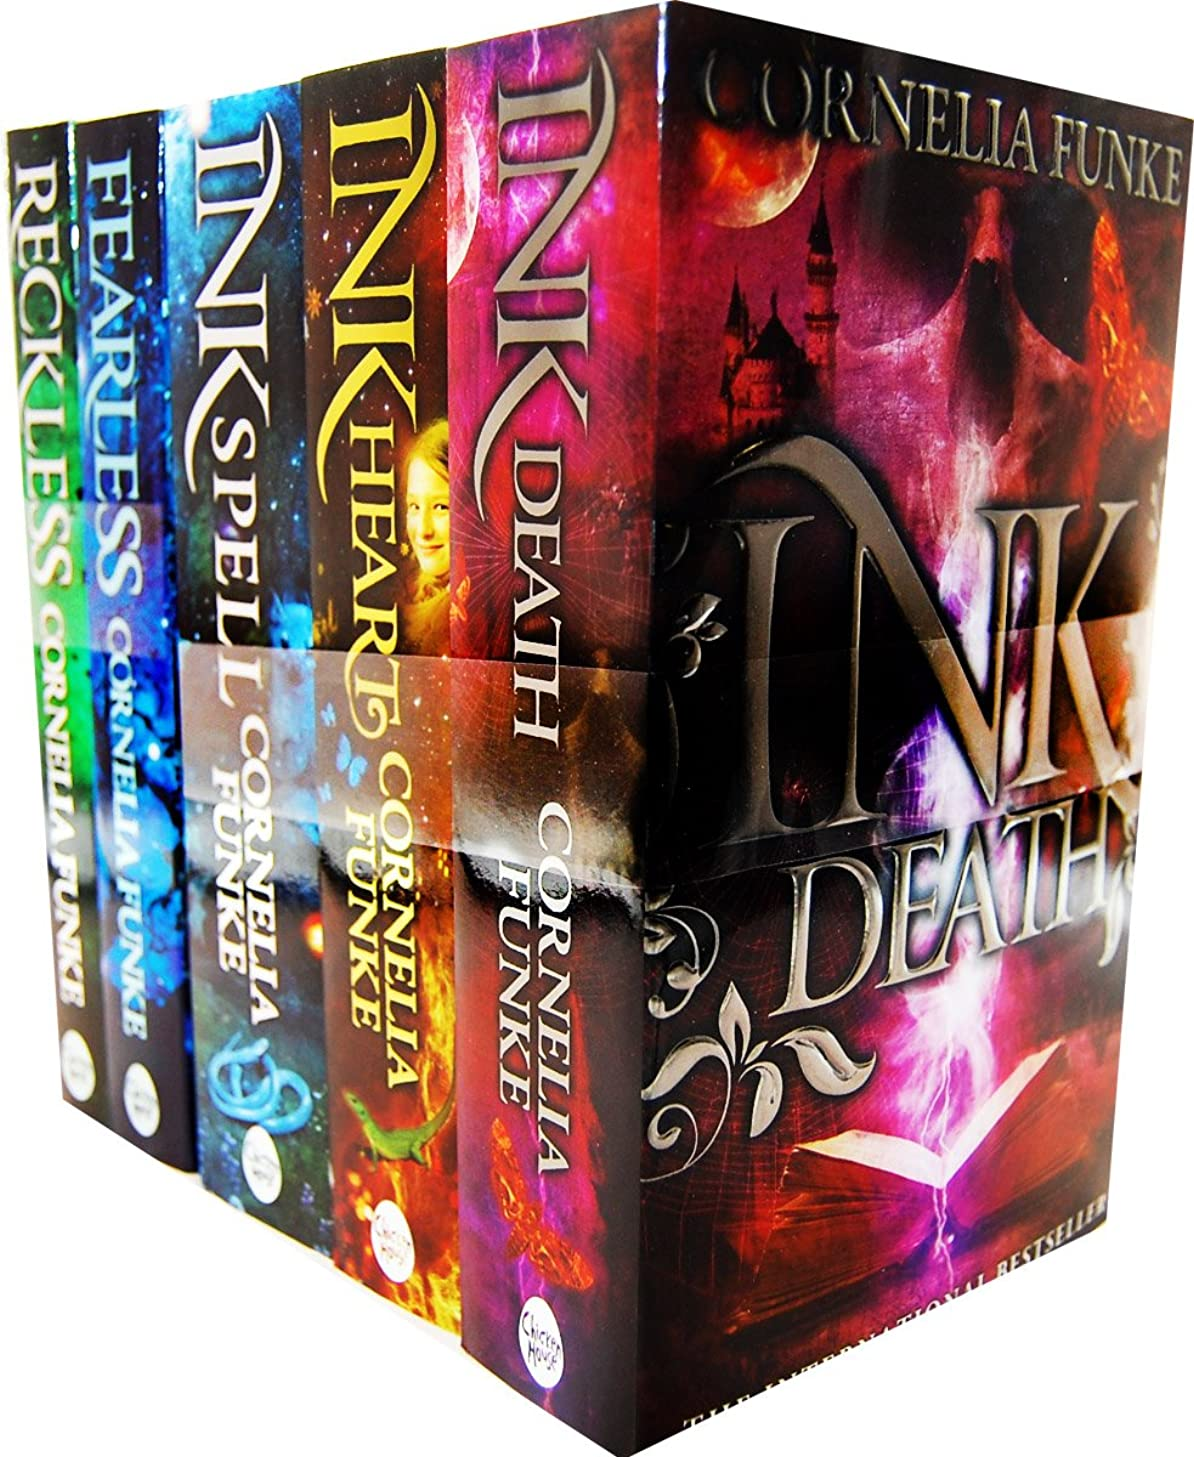 Cornelia Funke Inkheart Trilogy and Reckless 5 Books Collection Set RRP: ?£37.95 (Inkspell, Inkheart, Inkdeath, Reckless, Fearless)